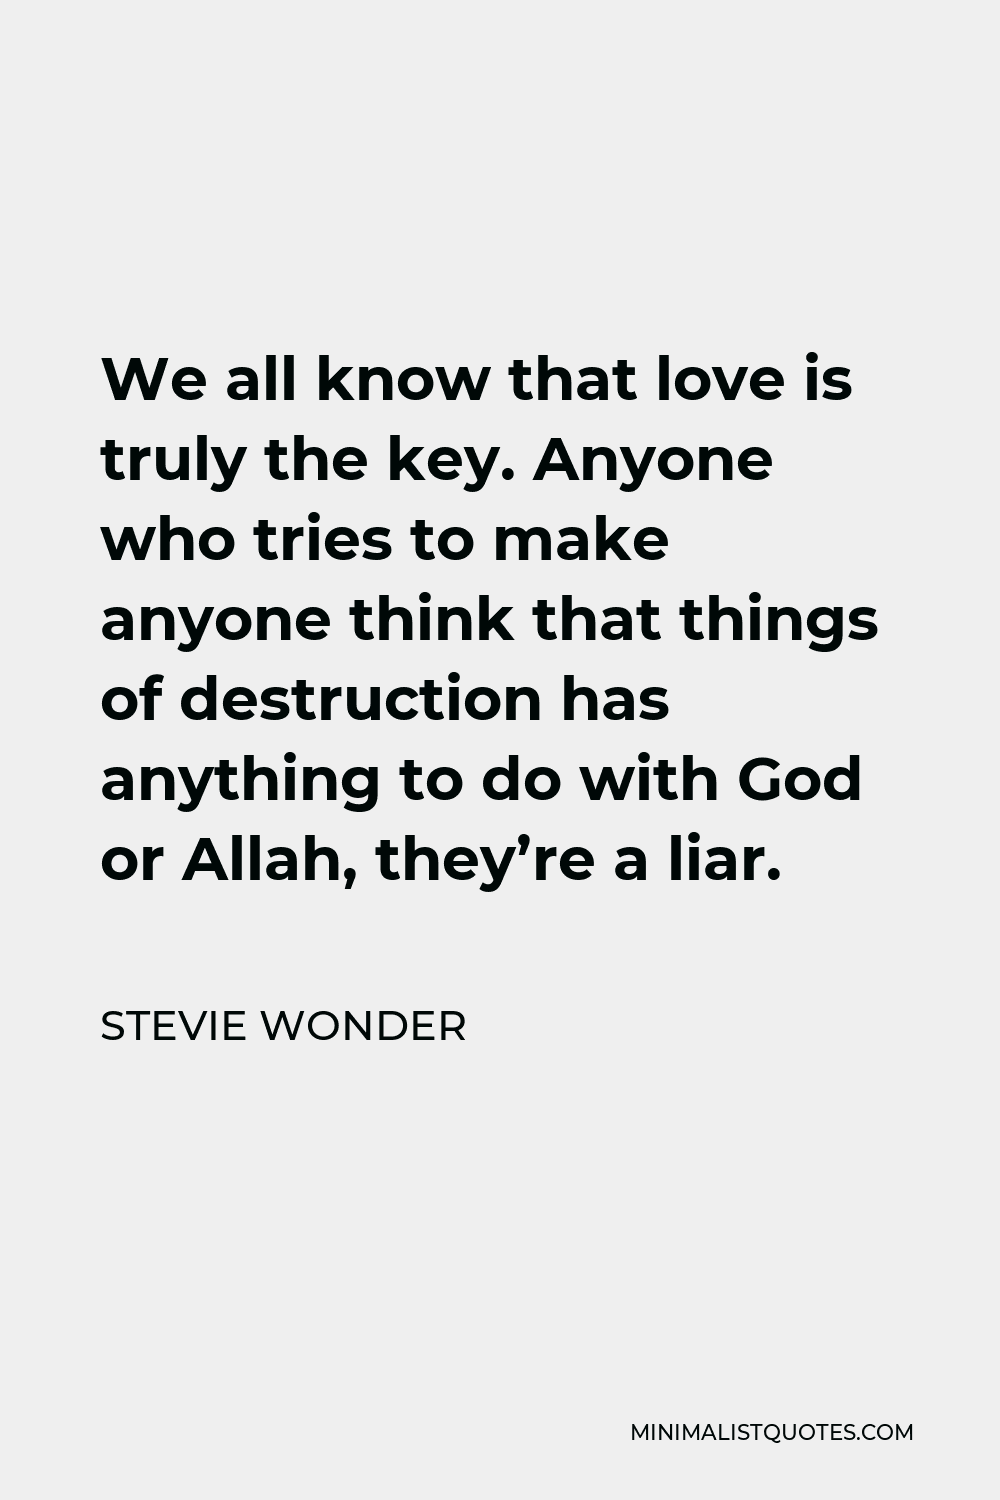 Stevie Wonder Quote - We all know that love is truly the key. Anyone who tries to make anyone think that things of destruction has anything to do with God or Allah, they're a liar.